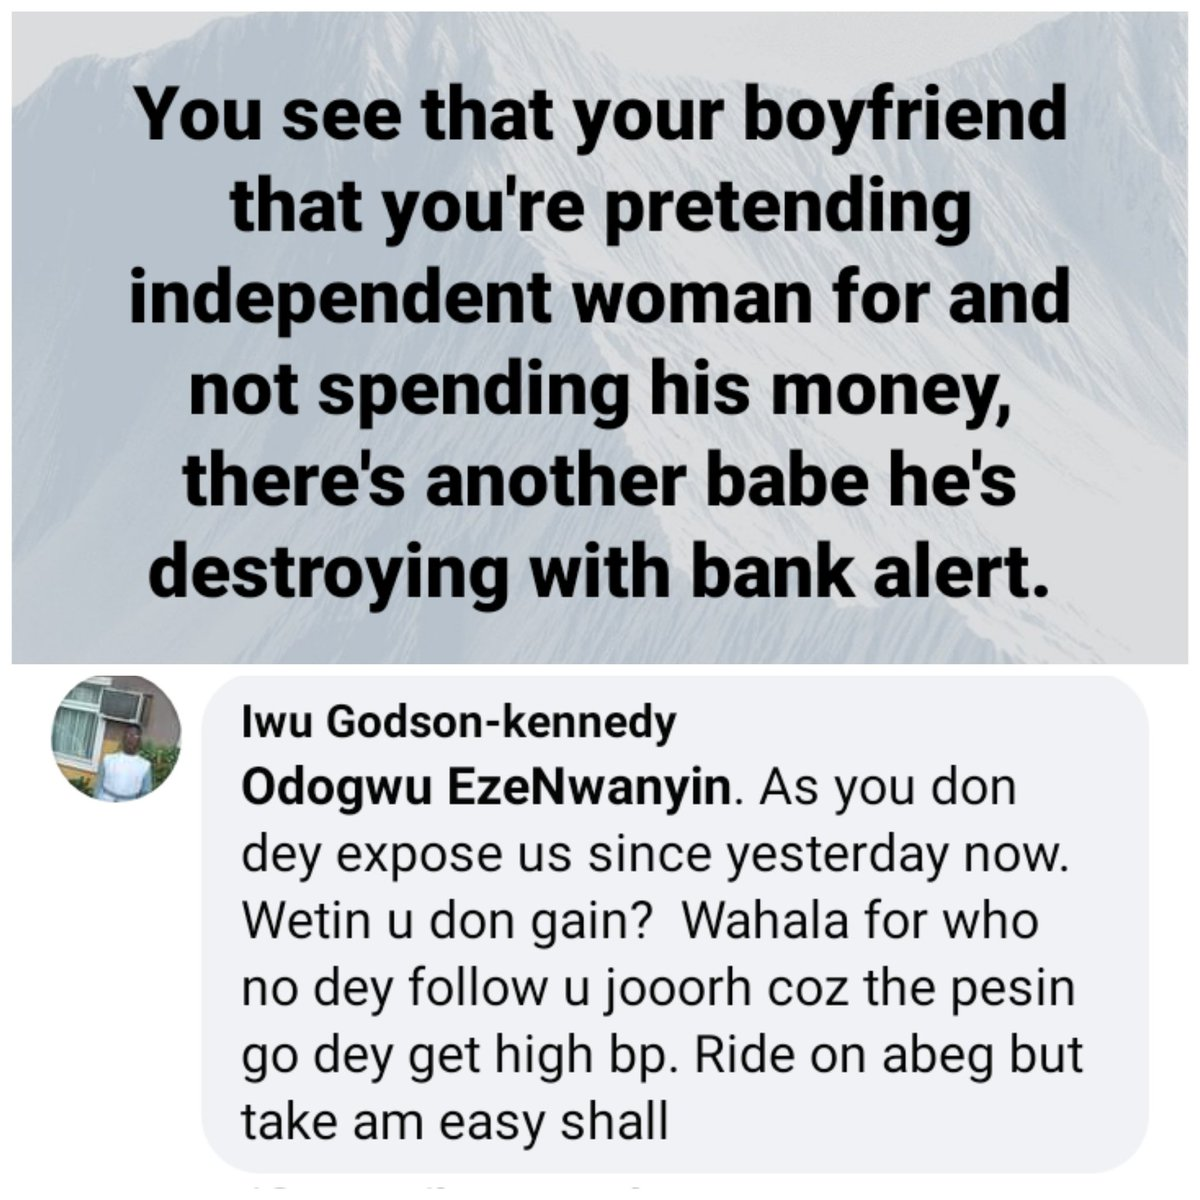 #NigerianArmy #Burnaboy #tuesdayvibe #topface2021 #COVID19 #HolocaustMemorialDay  Better be wise and don't be doing stupid.